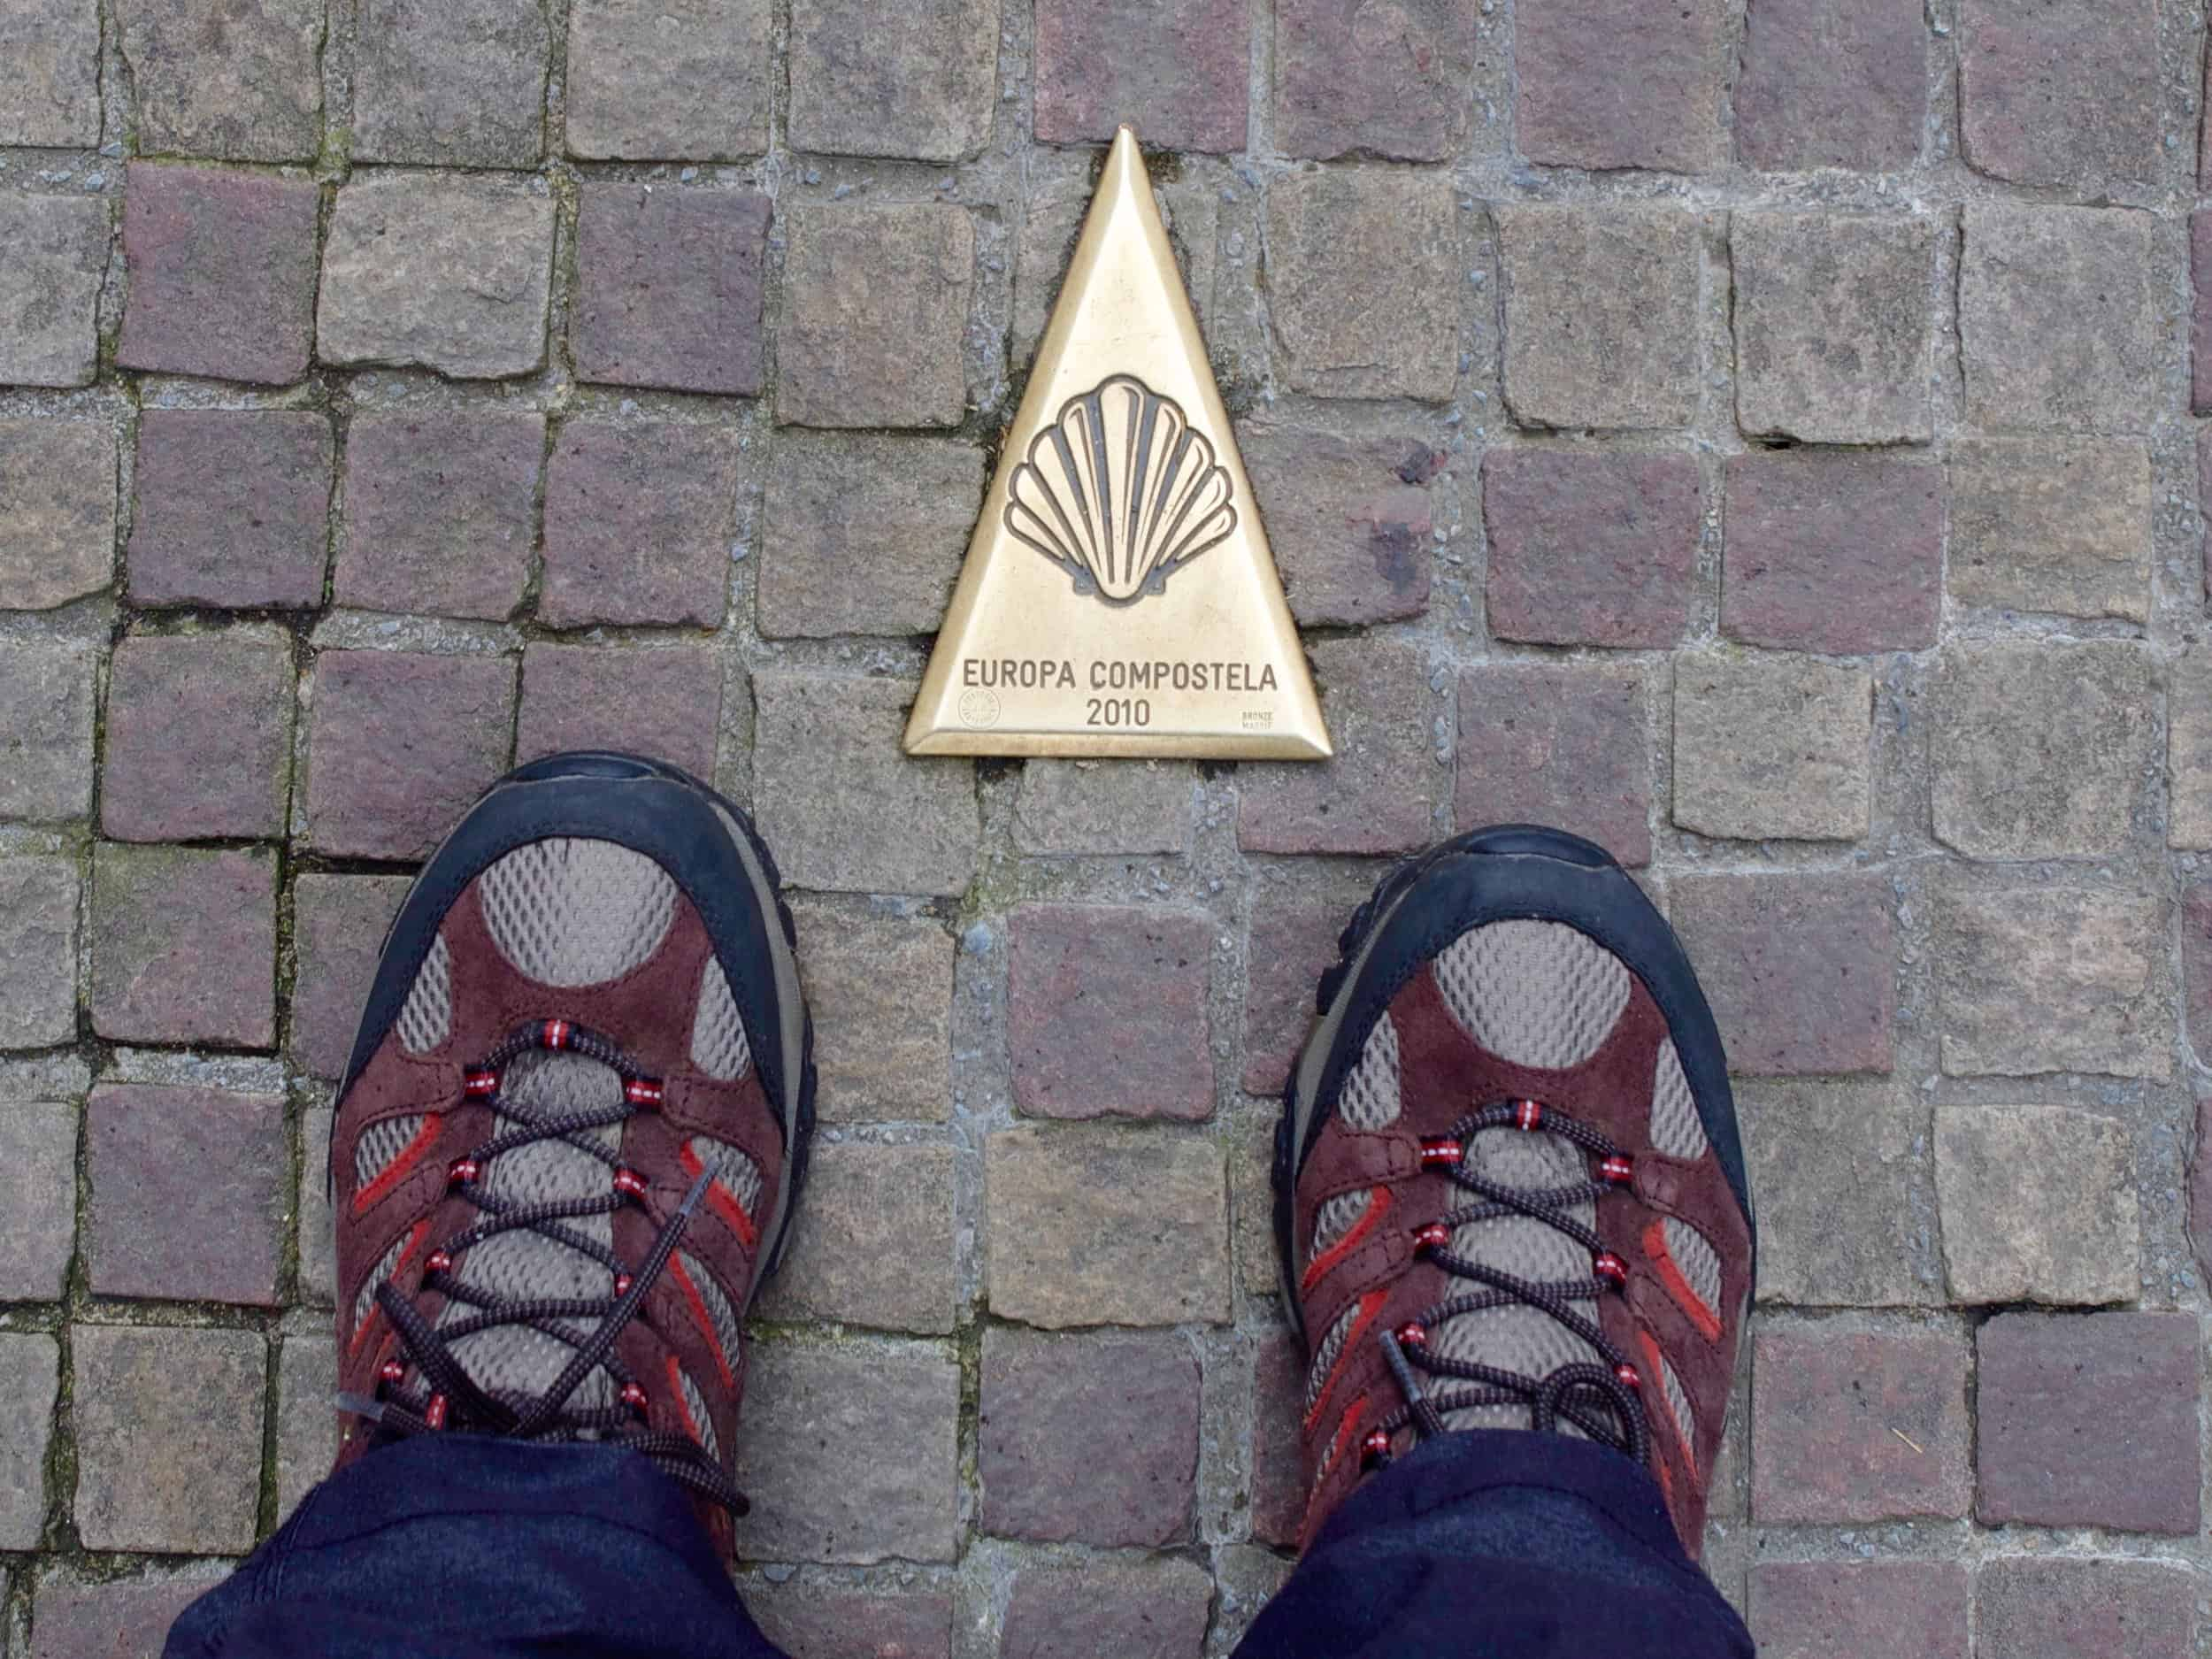 Merrell Moab hiking shoes standing near a brass plaque on the Camino de Santiago road